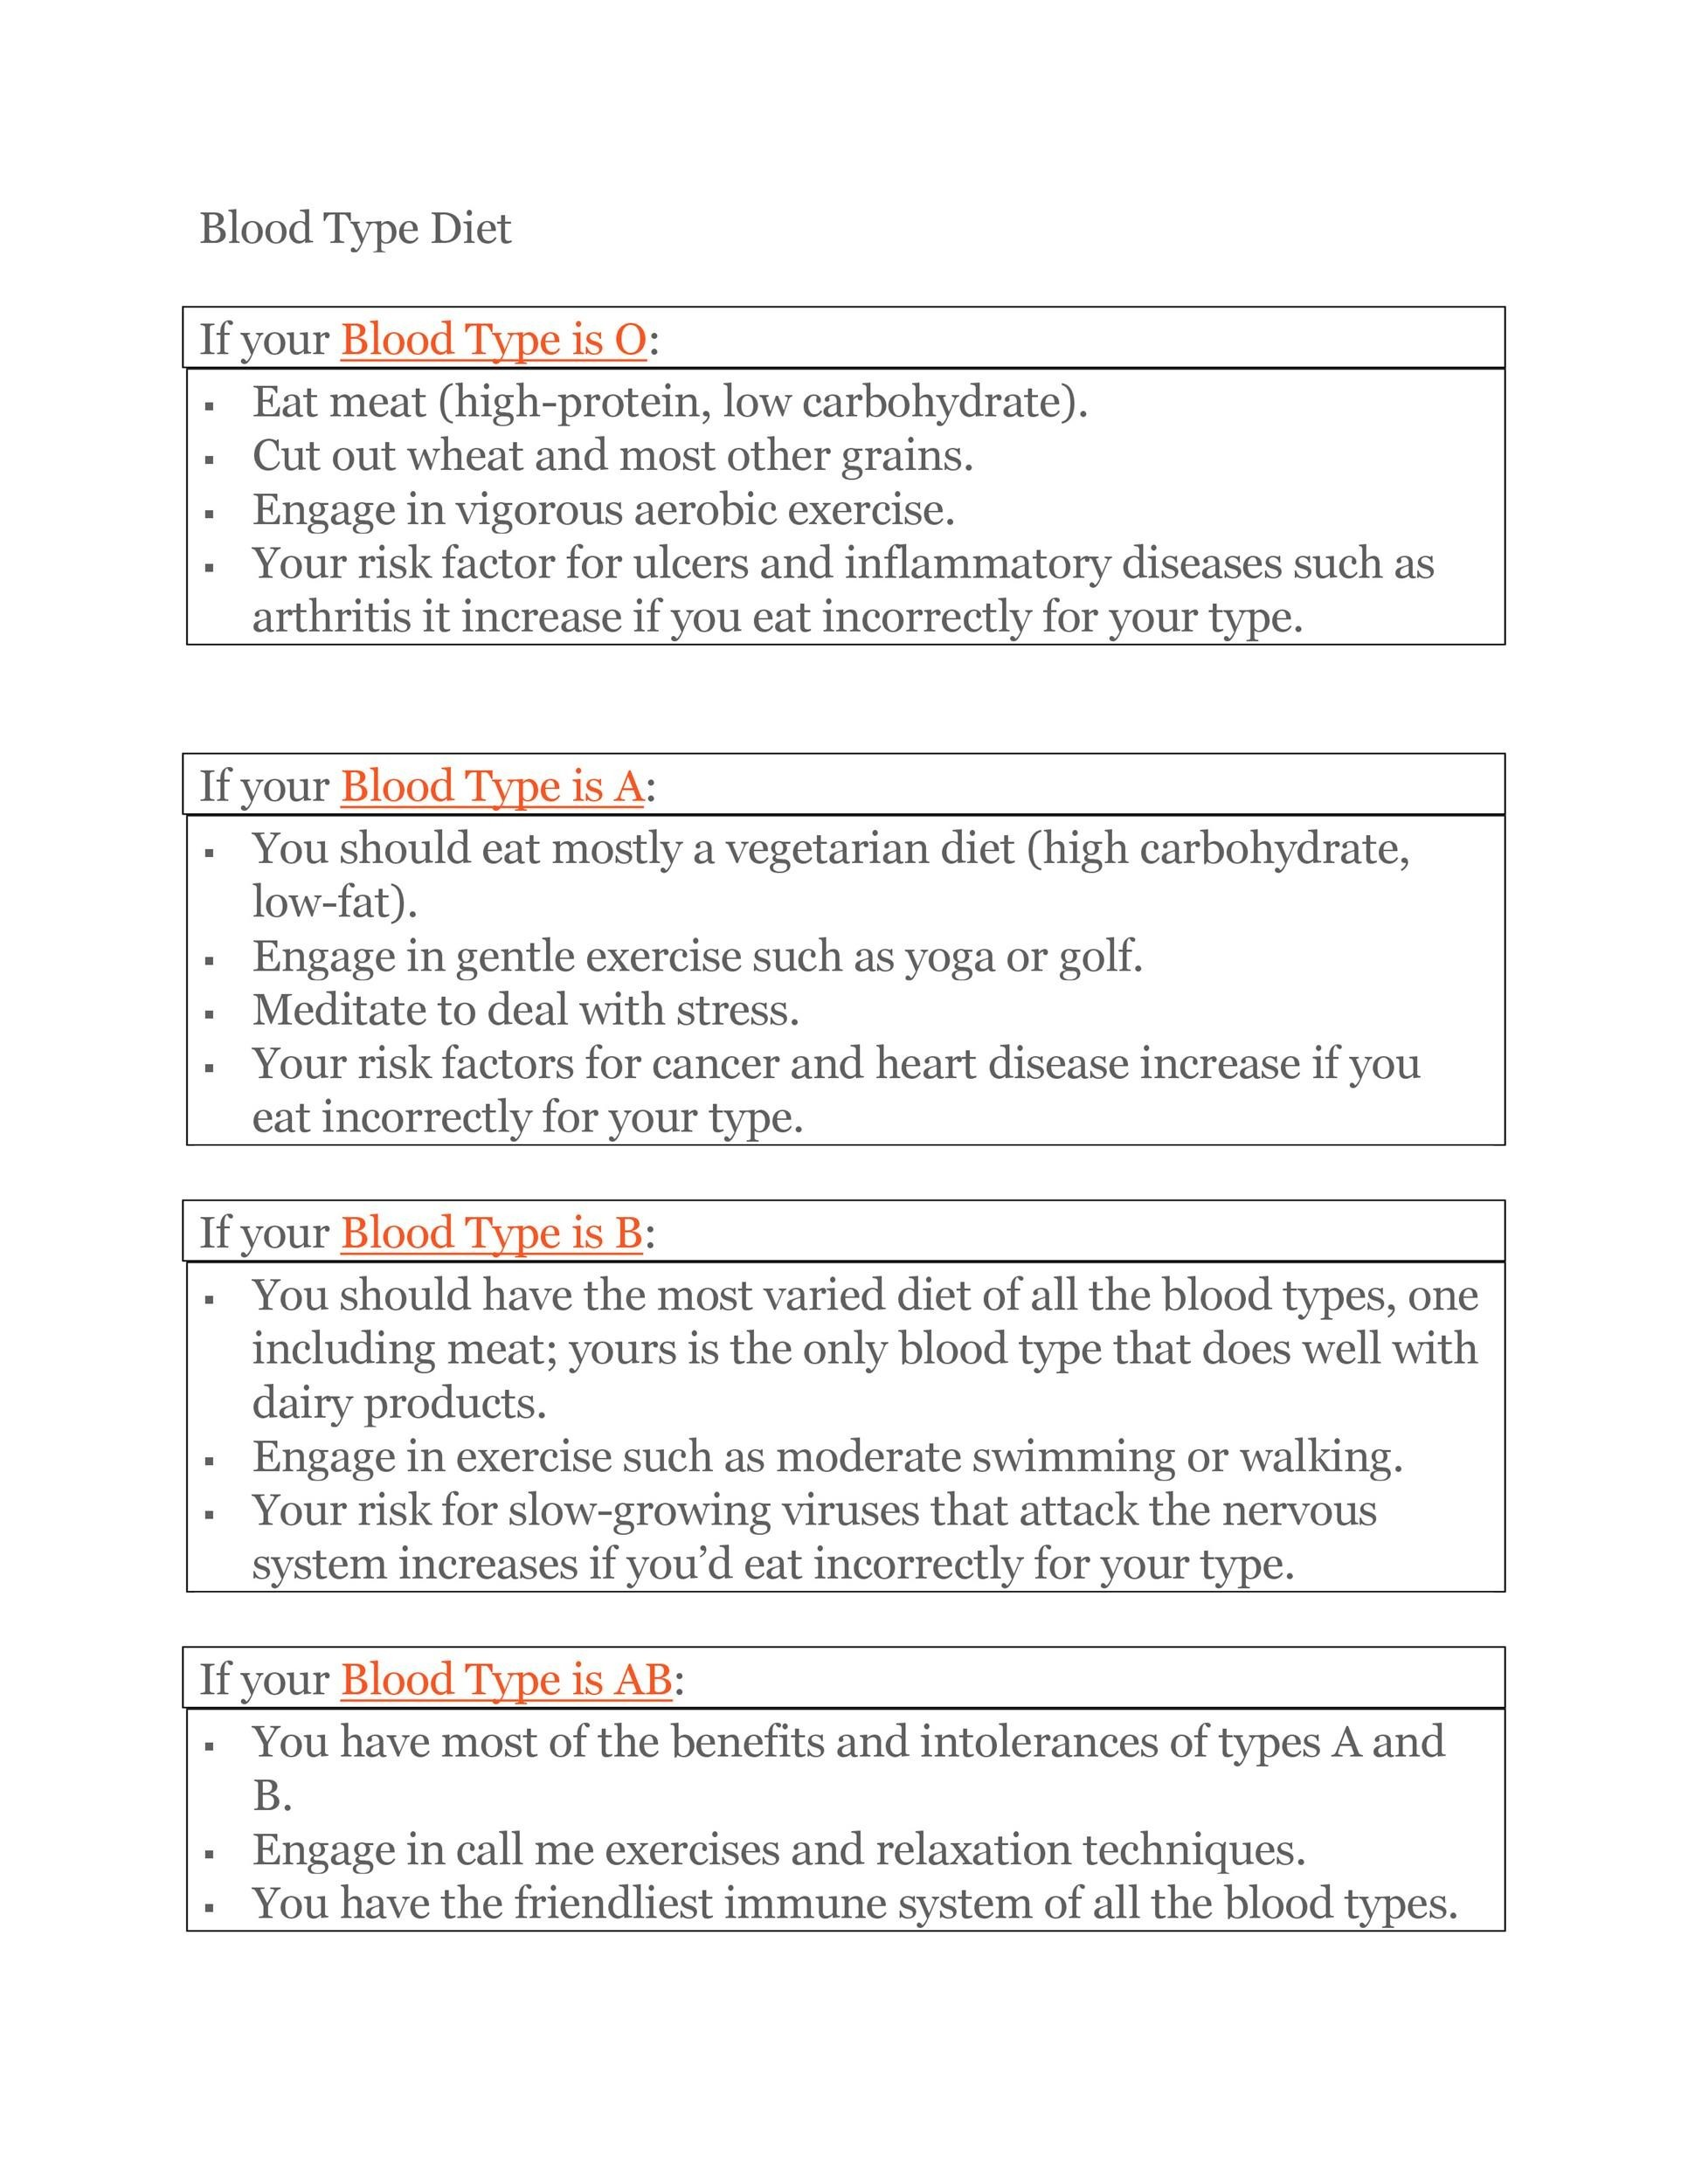 Free Blood Type Diet Chart 10